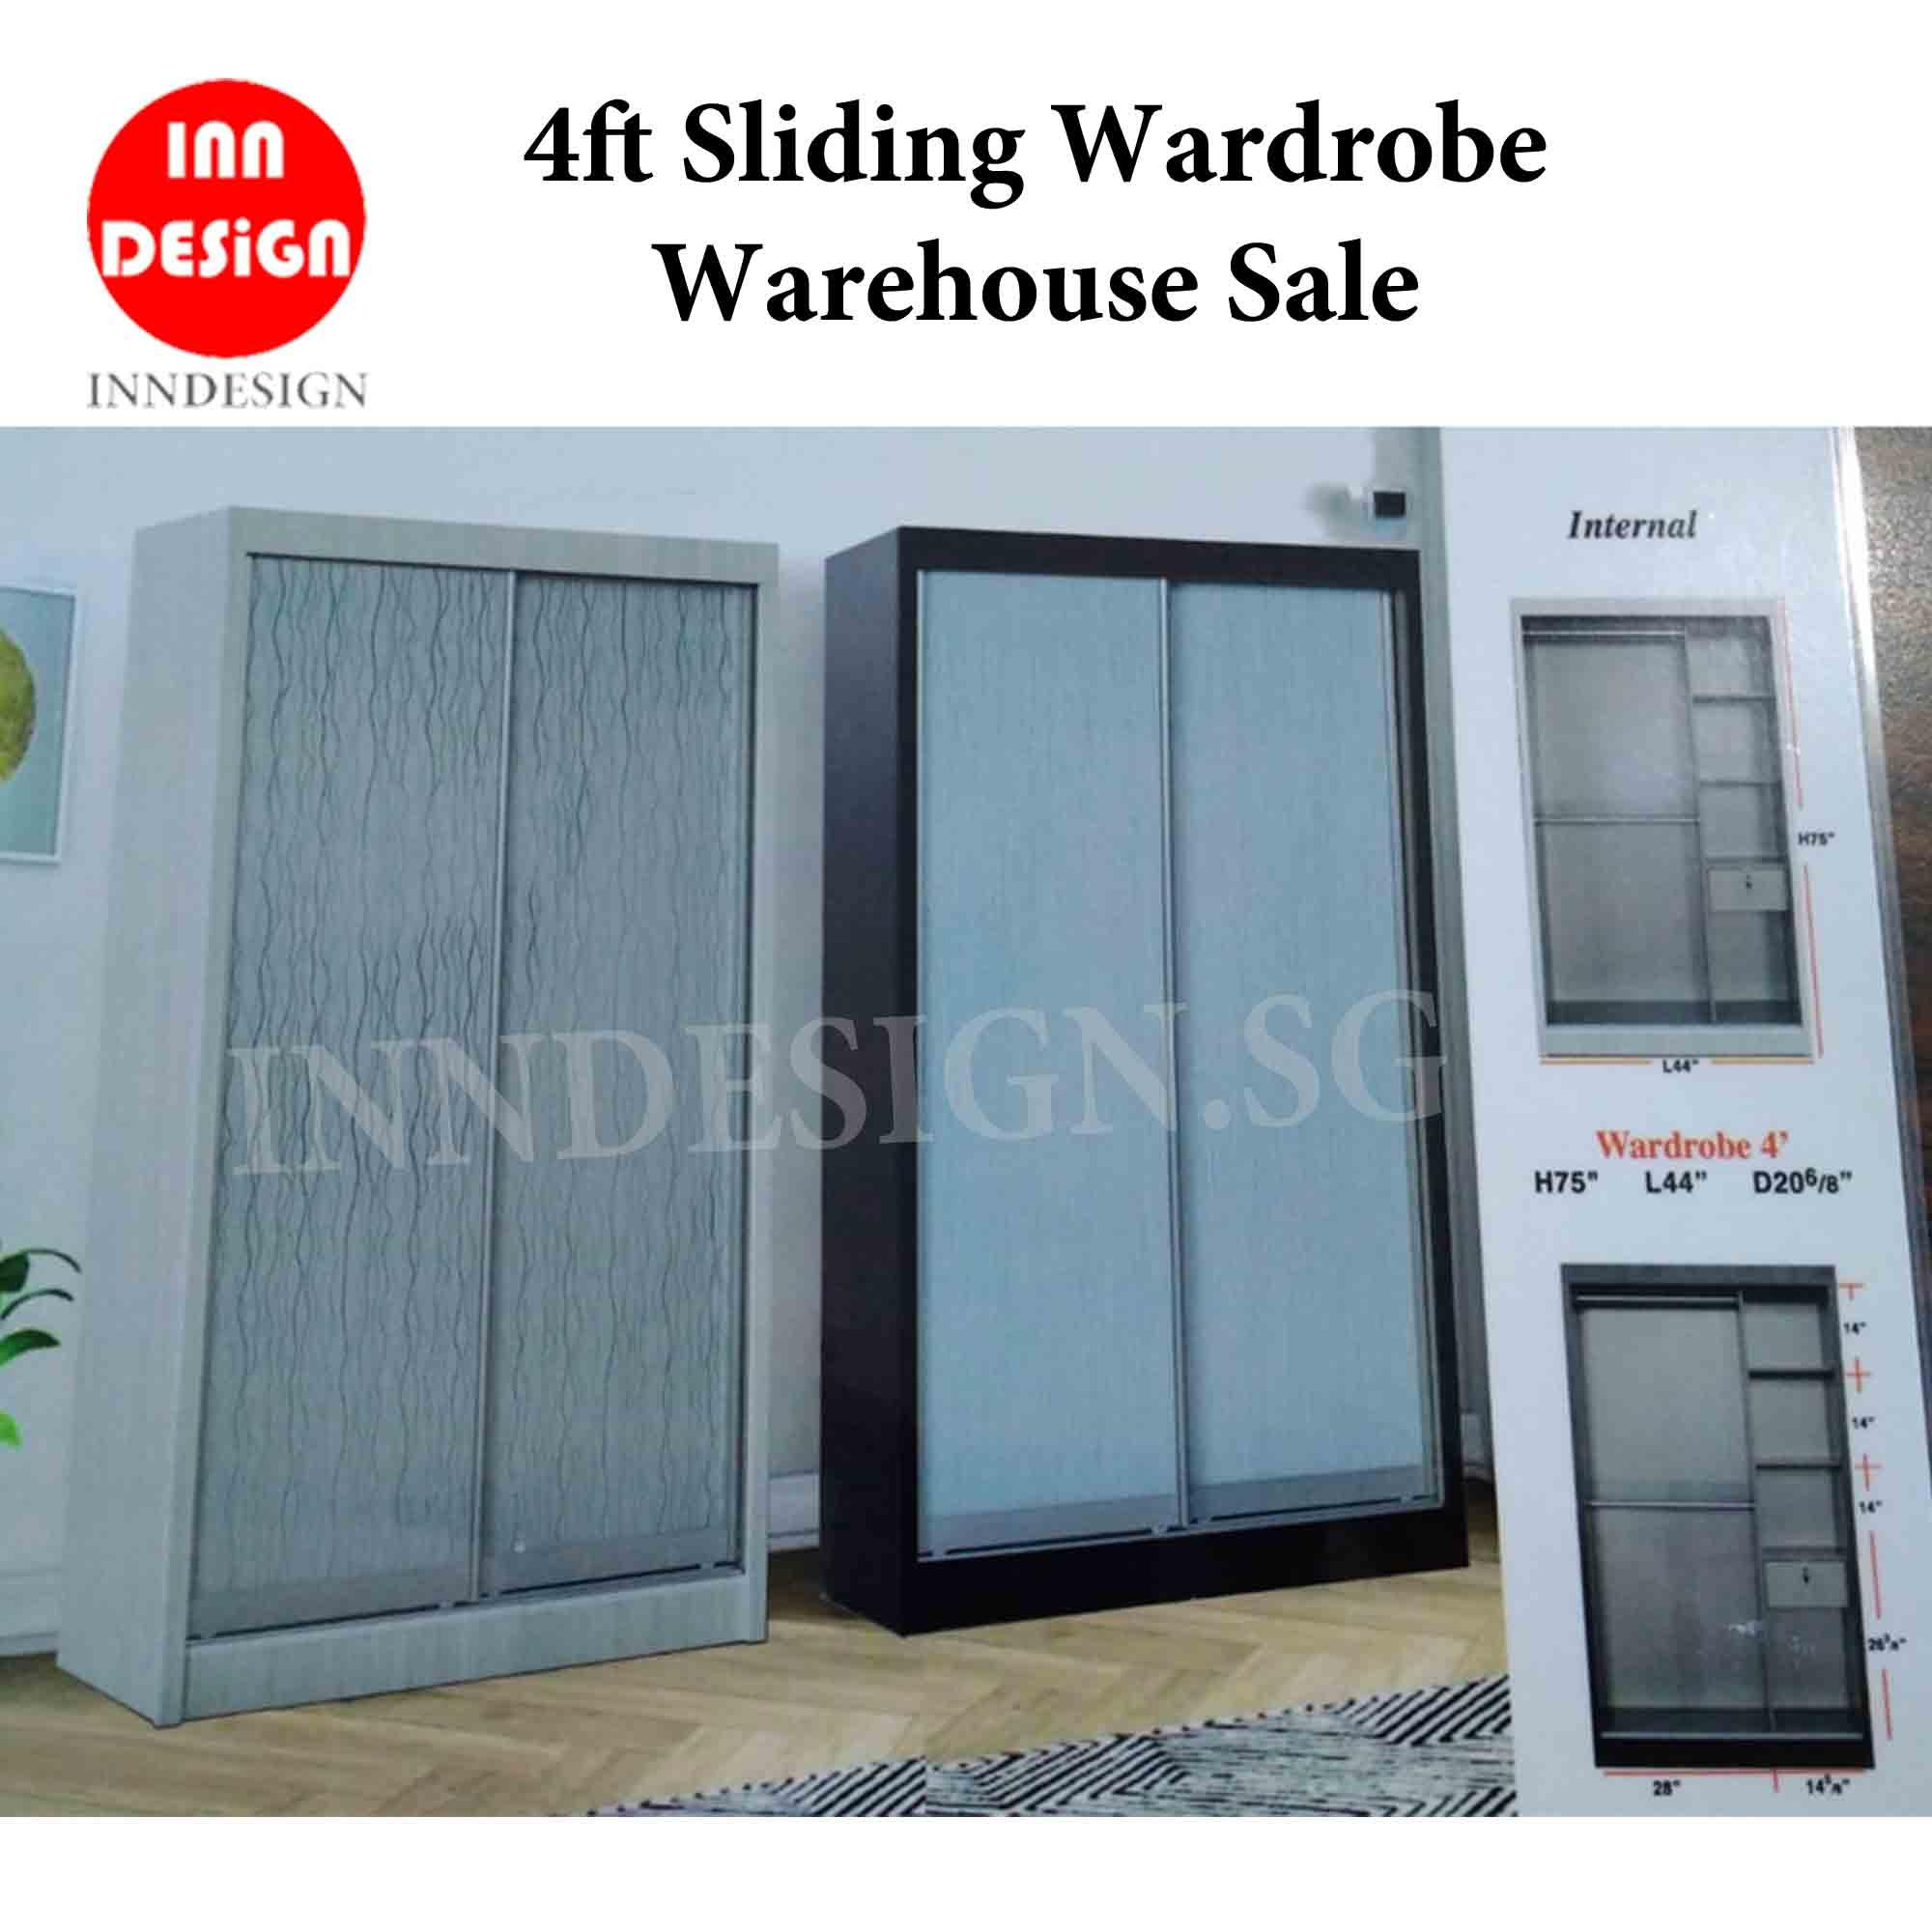 4ft Sliding Wardrobe Clearance Sale Offer (Free Delivery and Installation)